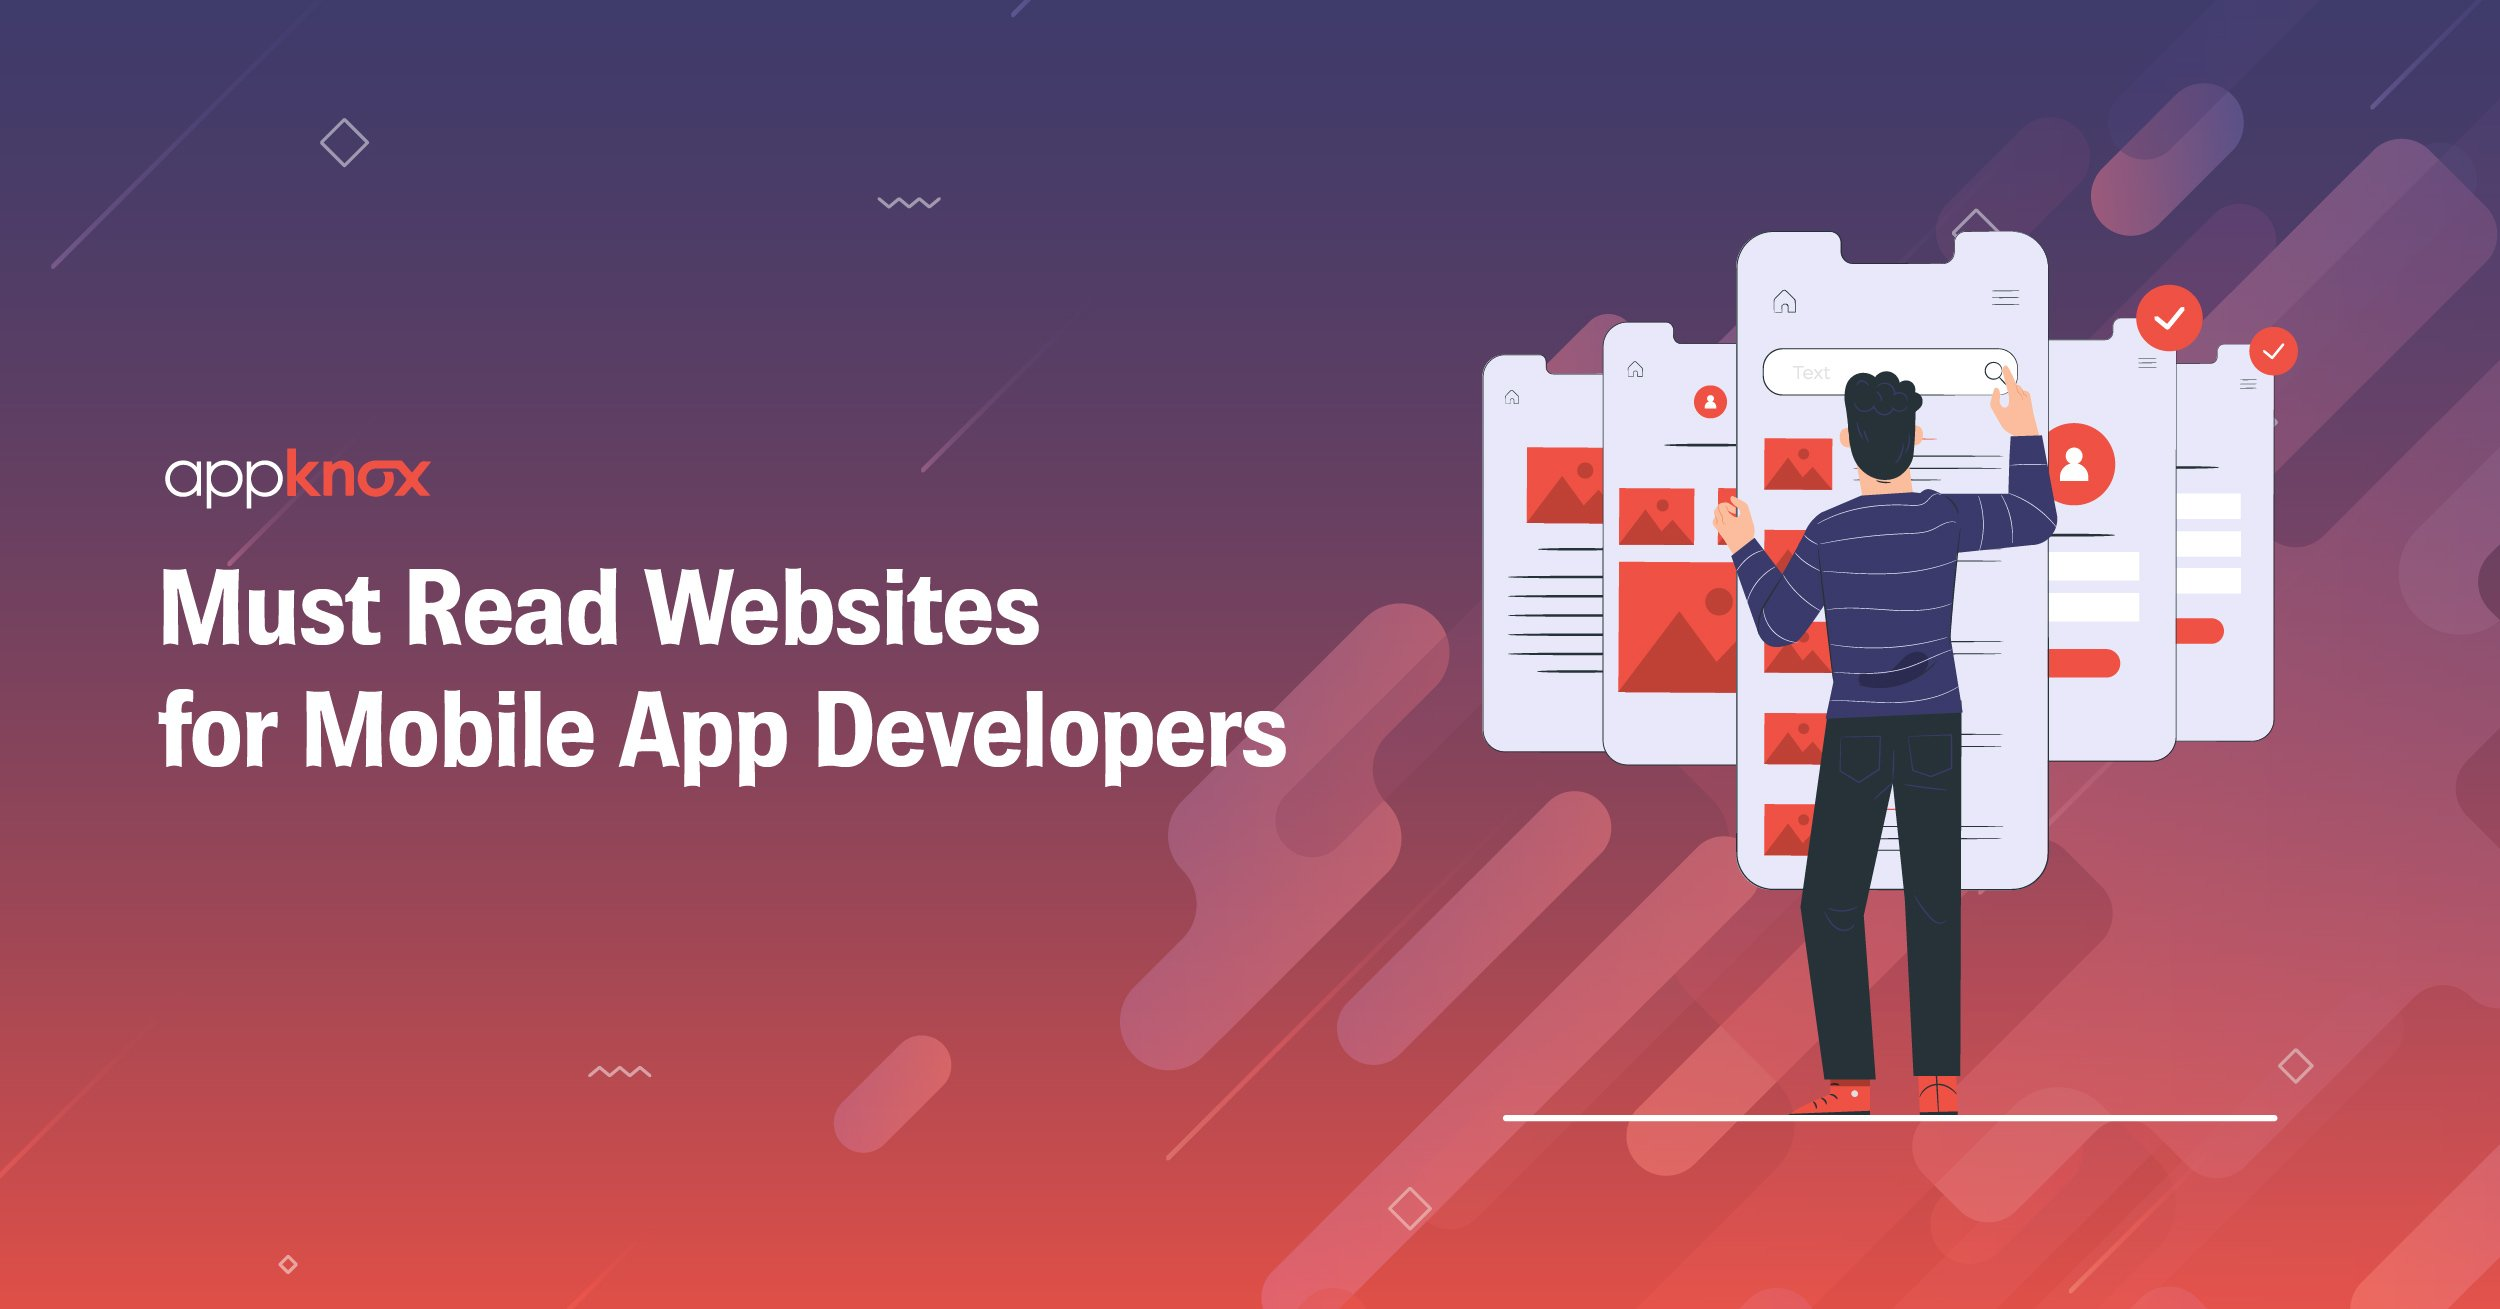 Must Read Websites for Mobile App Developers